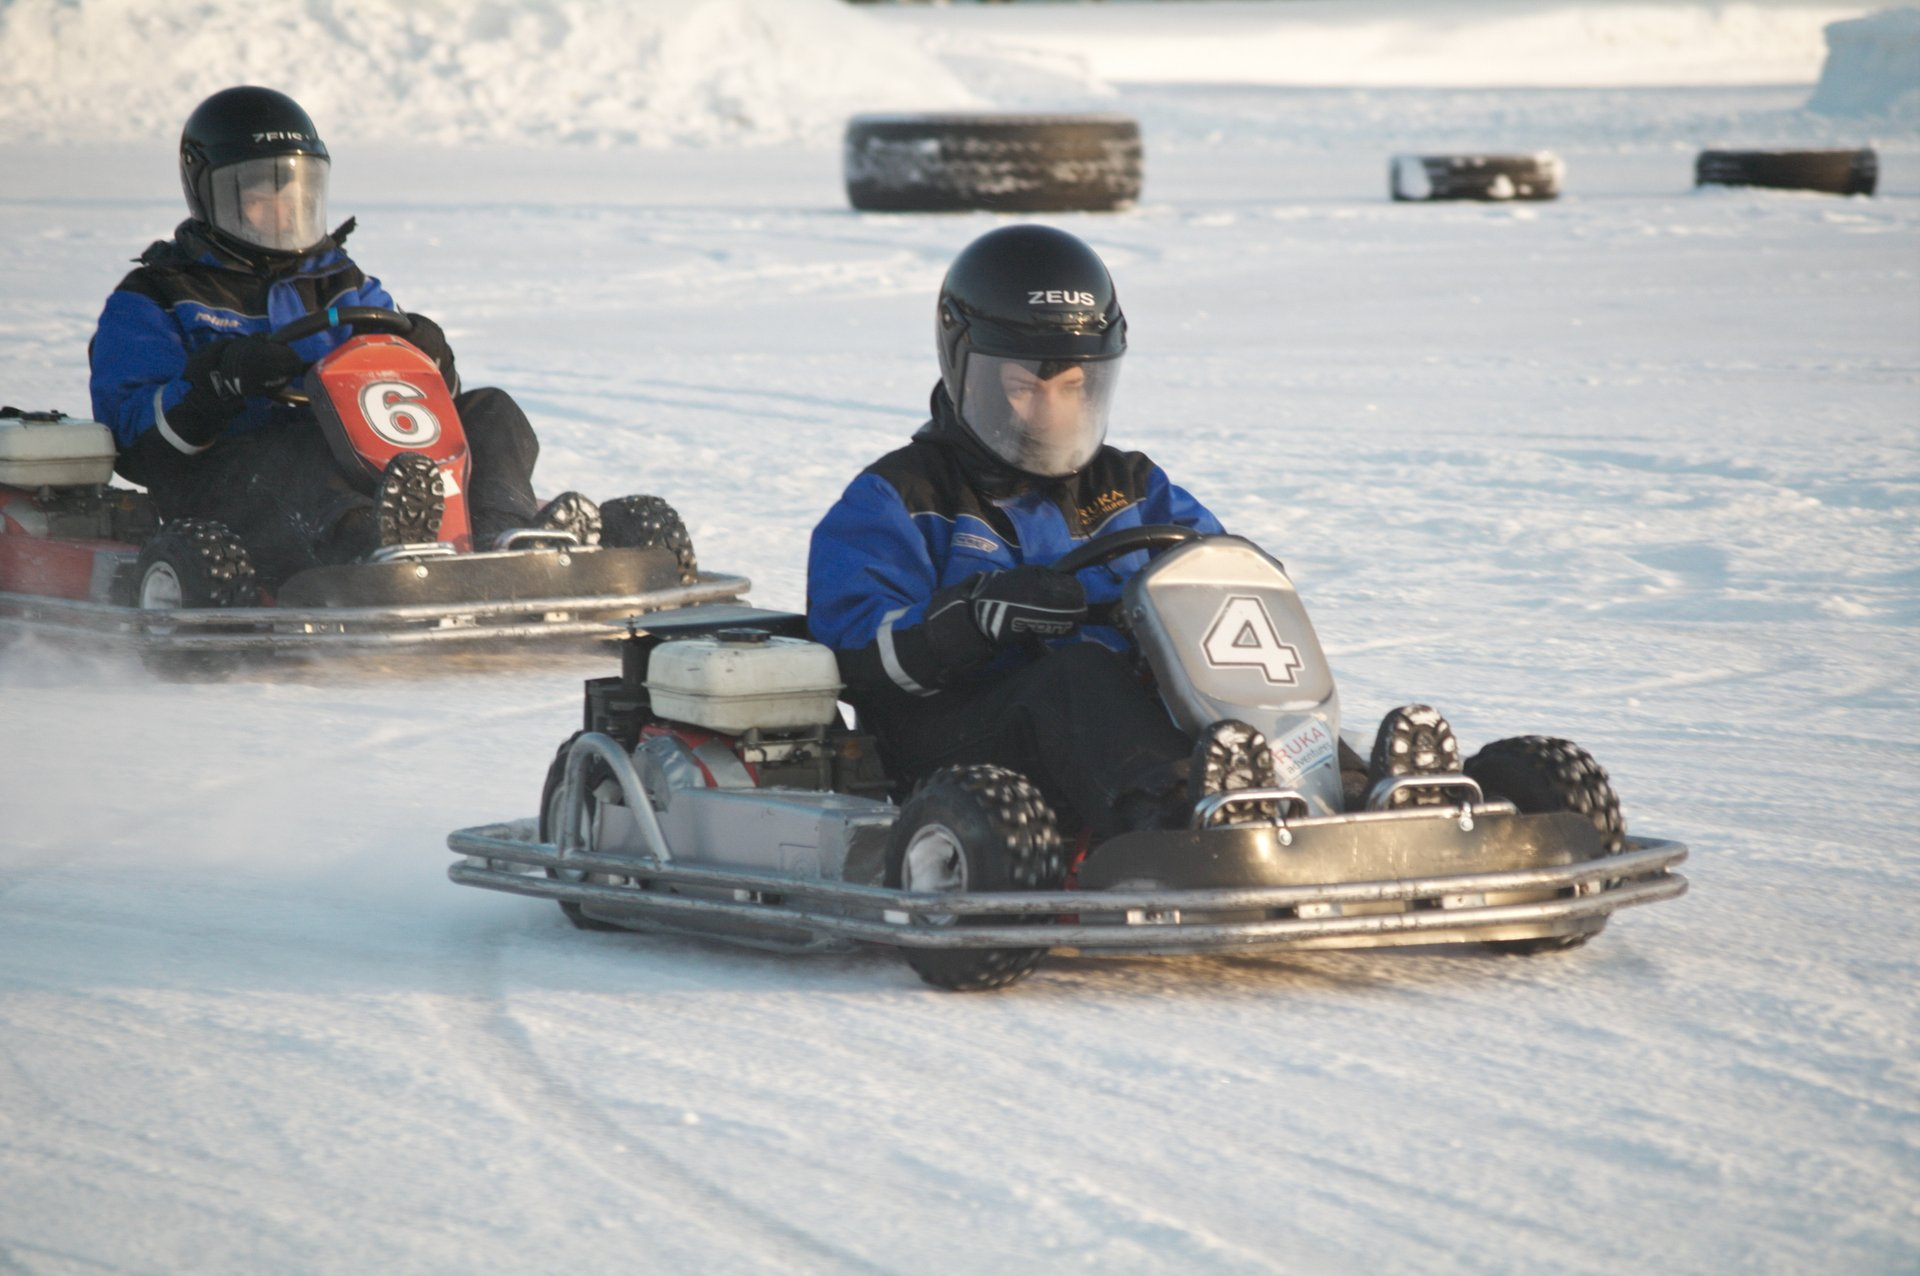 Ice Karting in Finland 2020 - Best Time